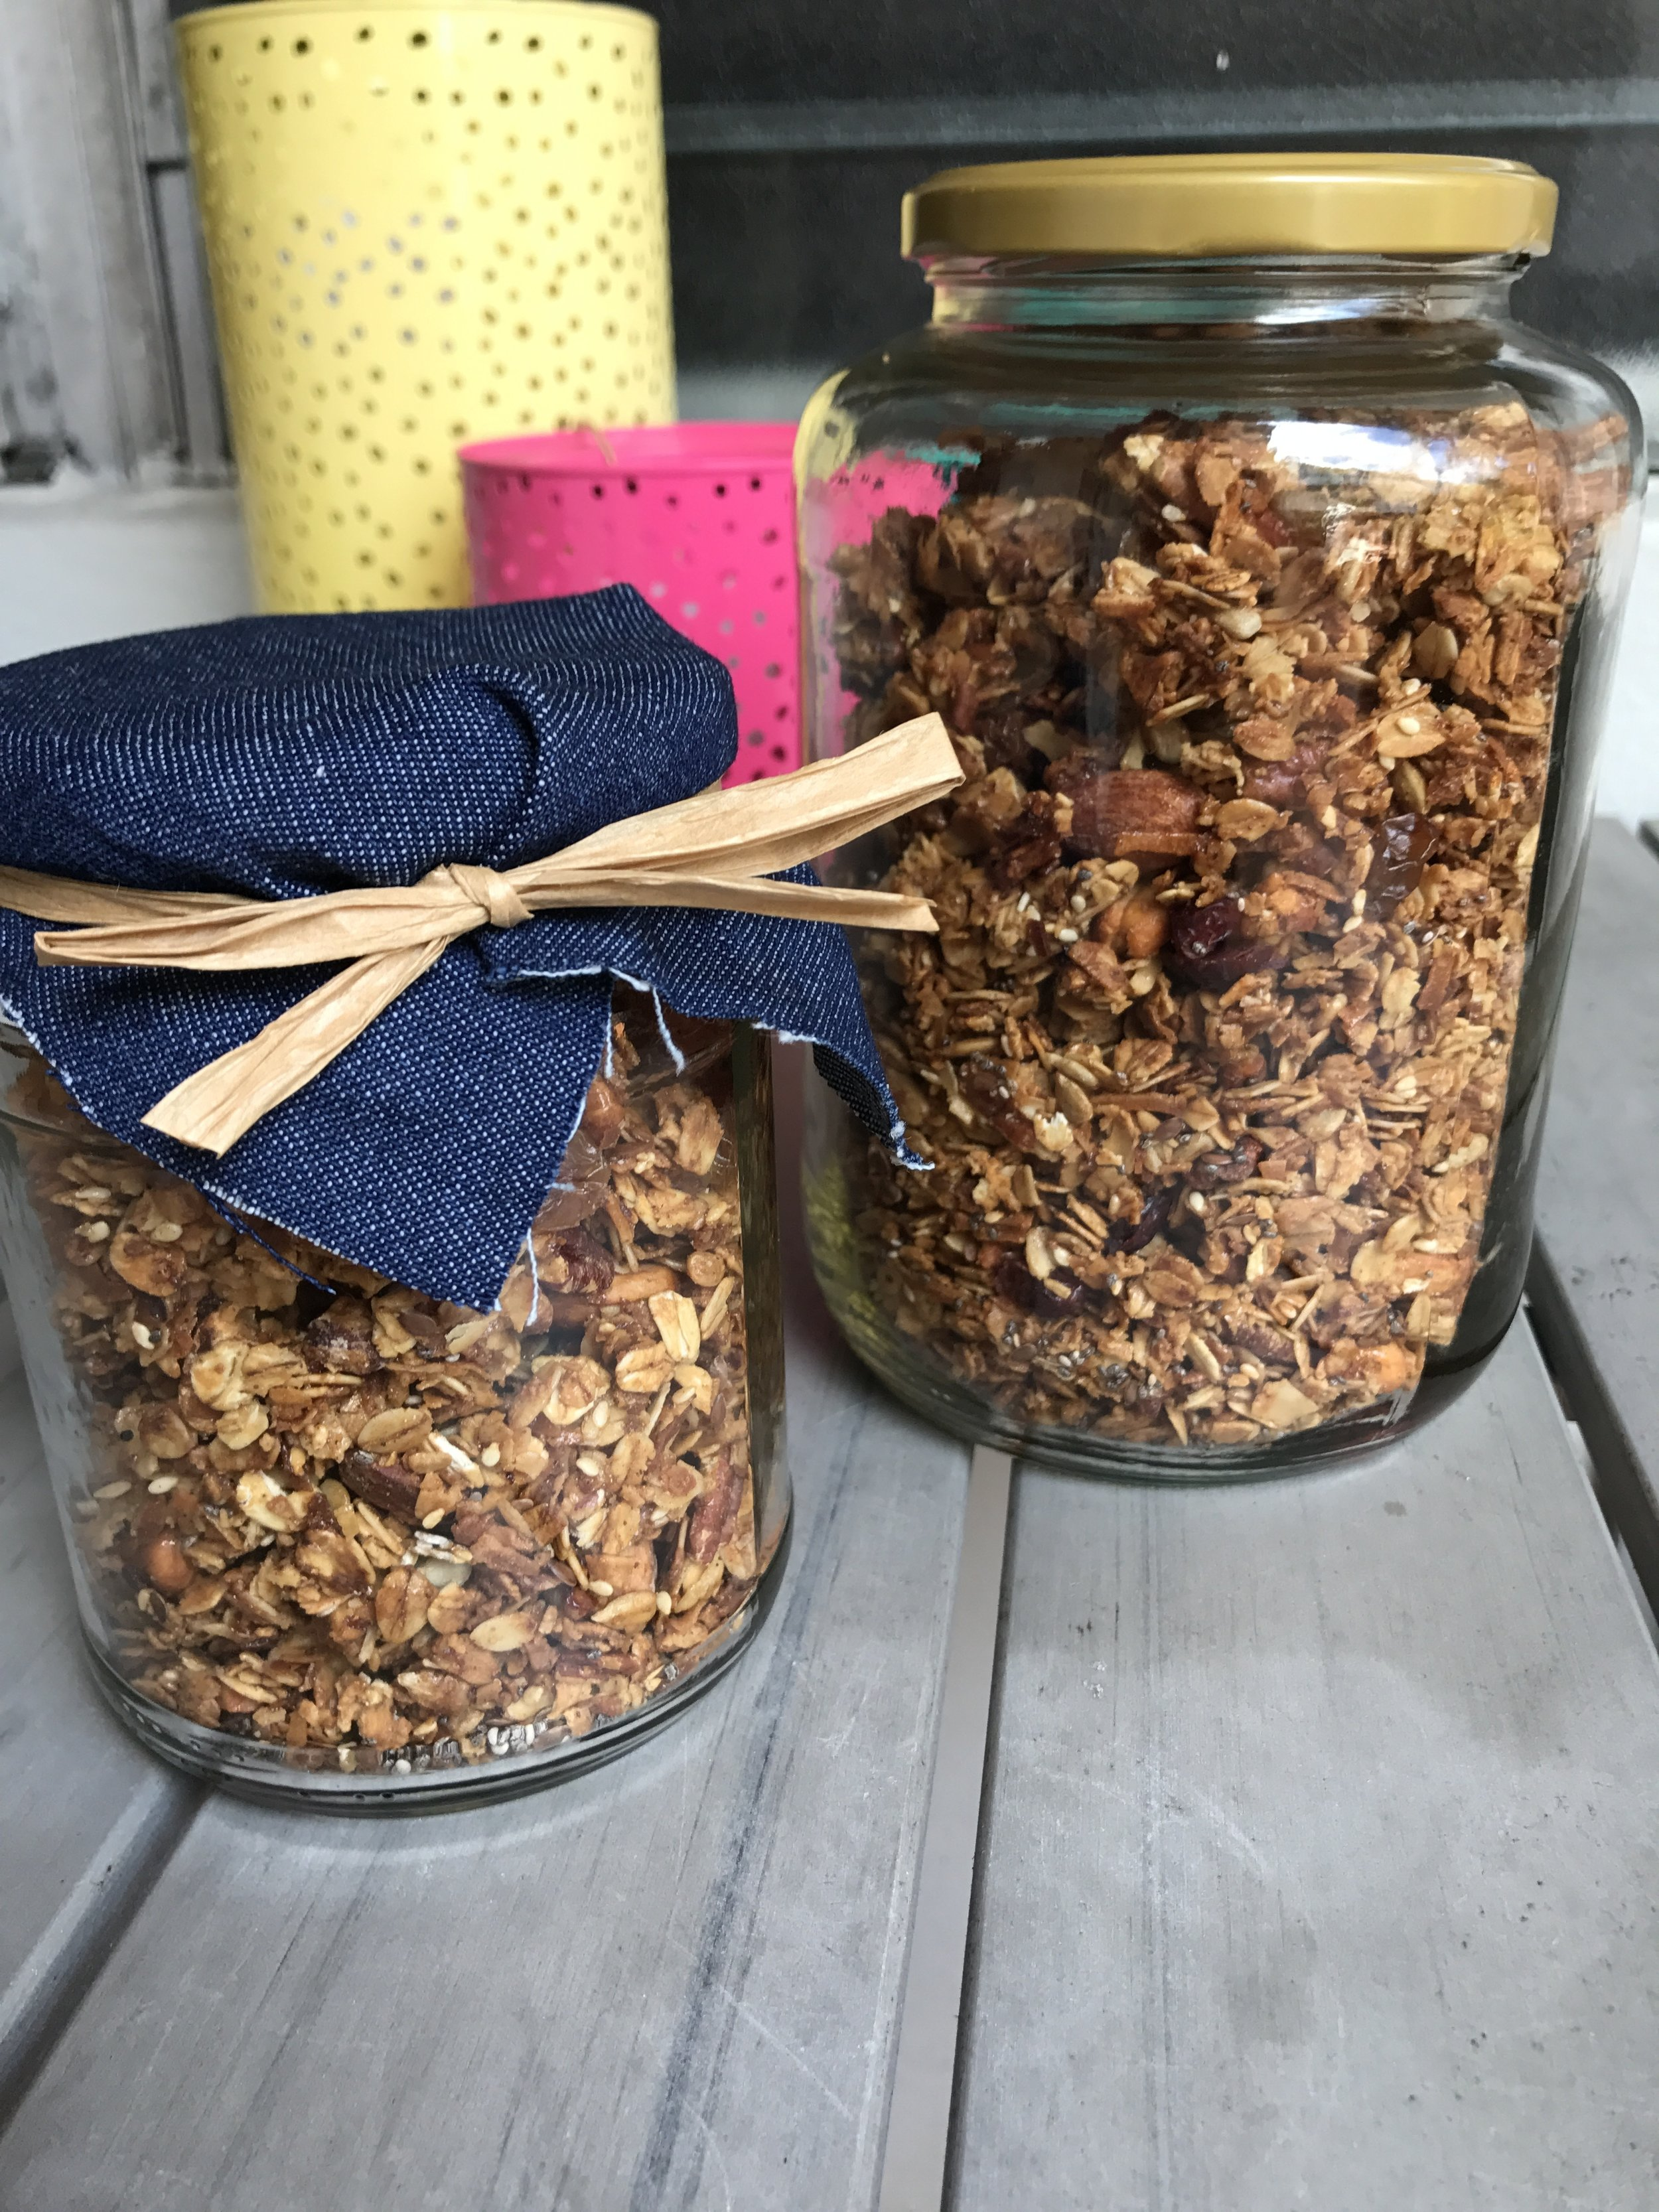 Granola jars are the perfect holiday/birthday gift for a friend, coworker, or teachers.